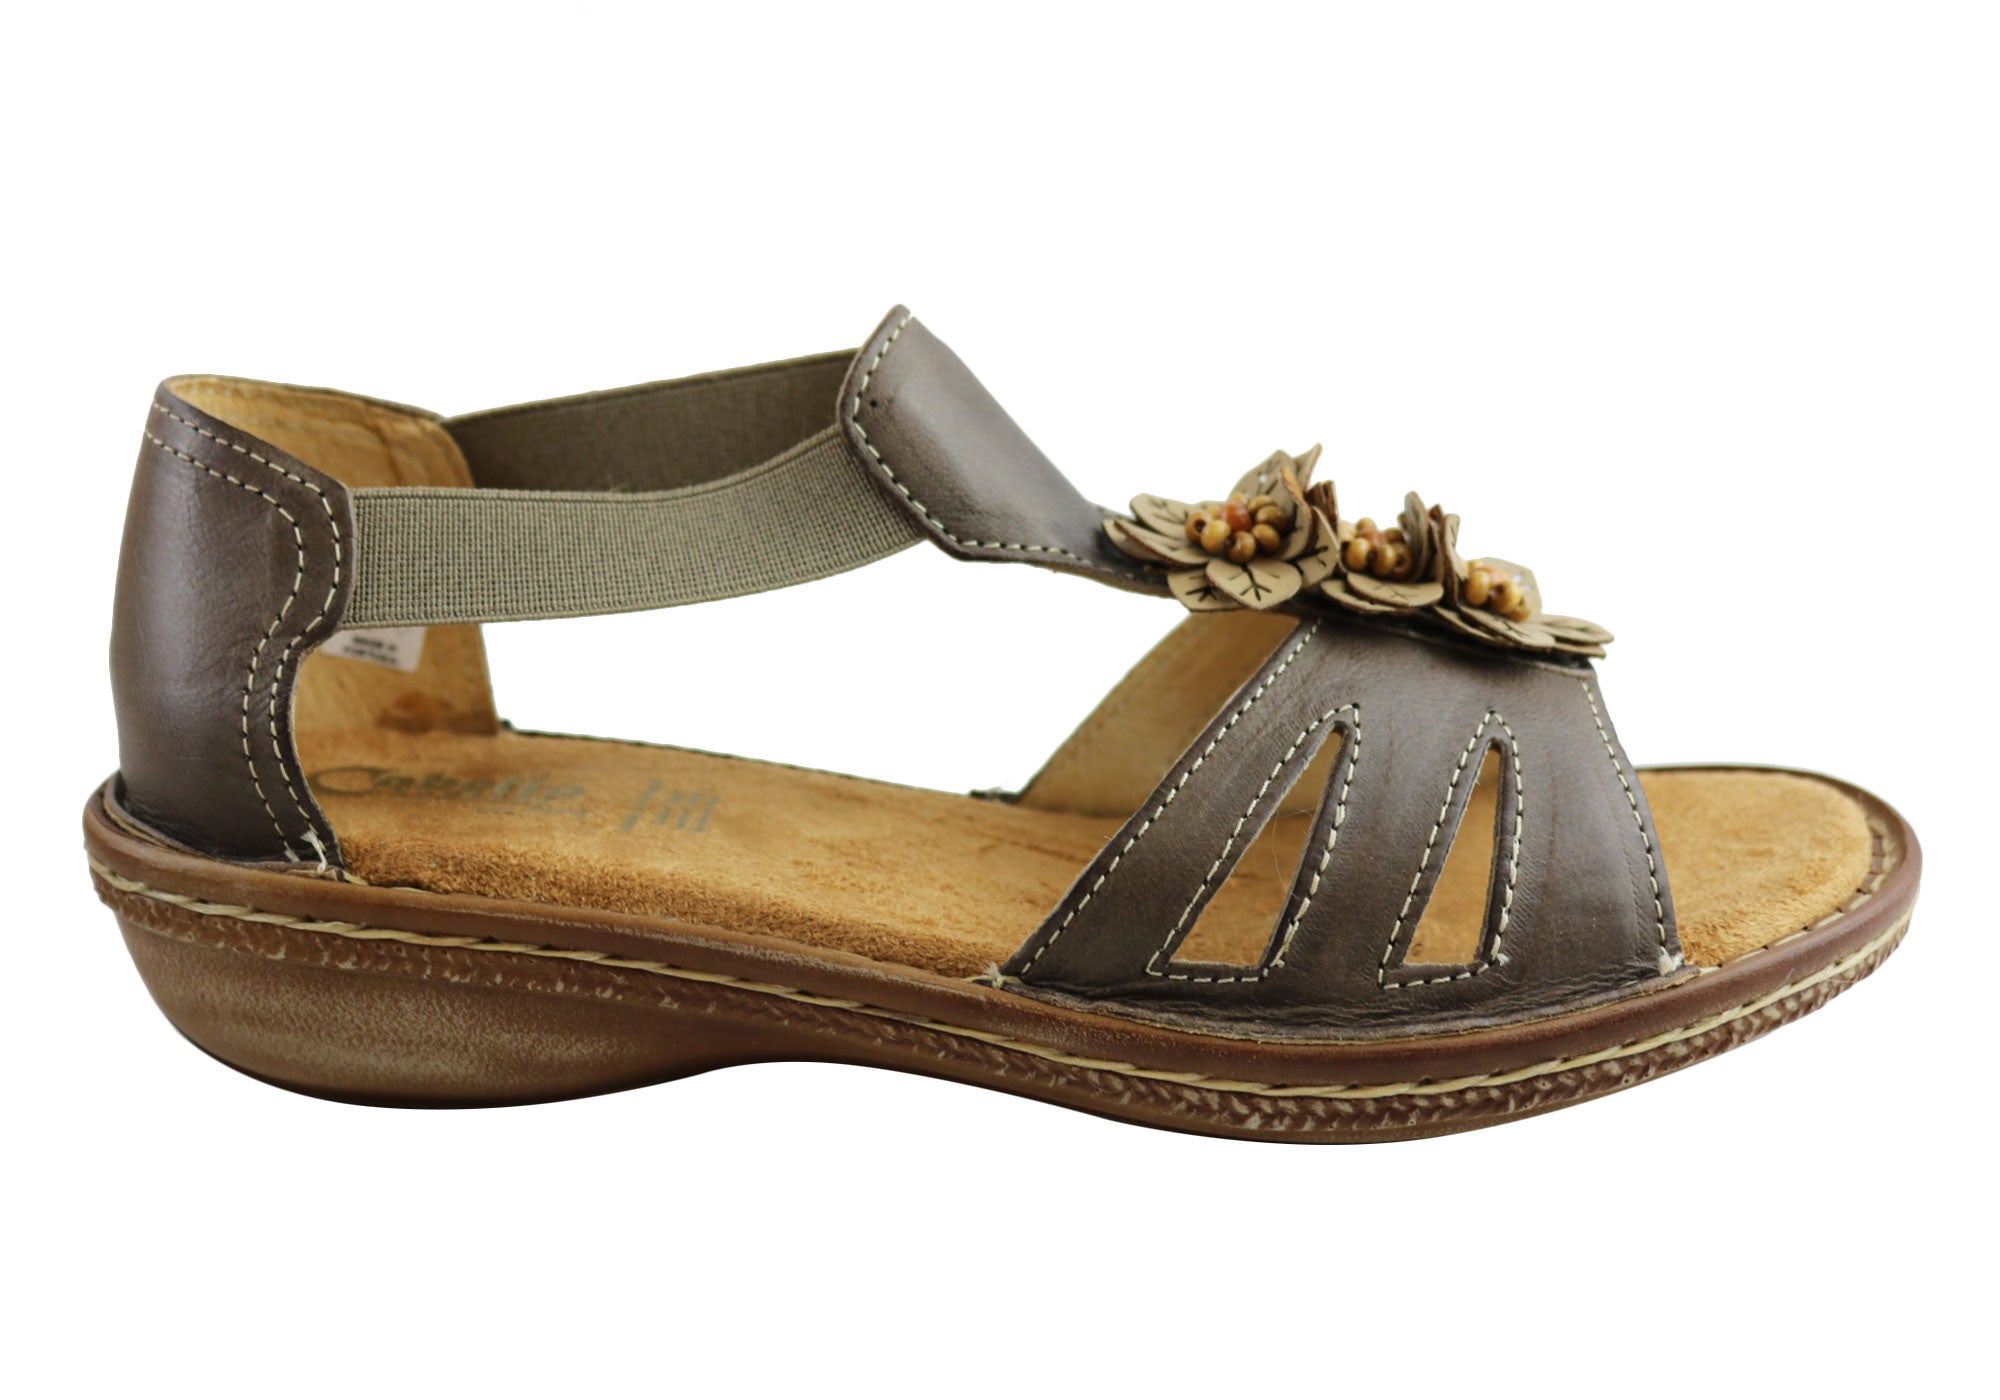 new high quality amazing price 50% off Details about Brand New Cabello Comfort 4032 Womens Leather Sandals Made In  Portugal